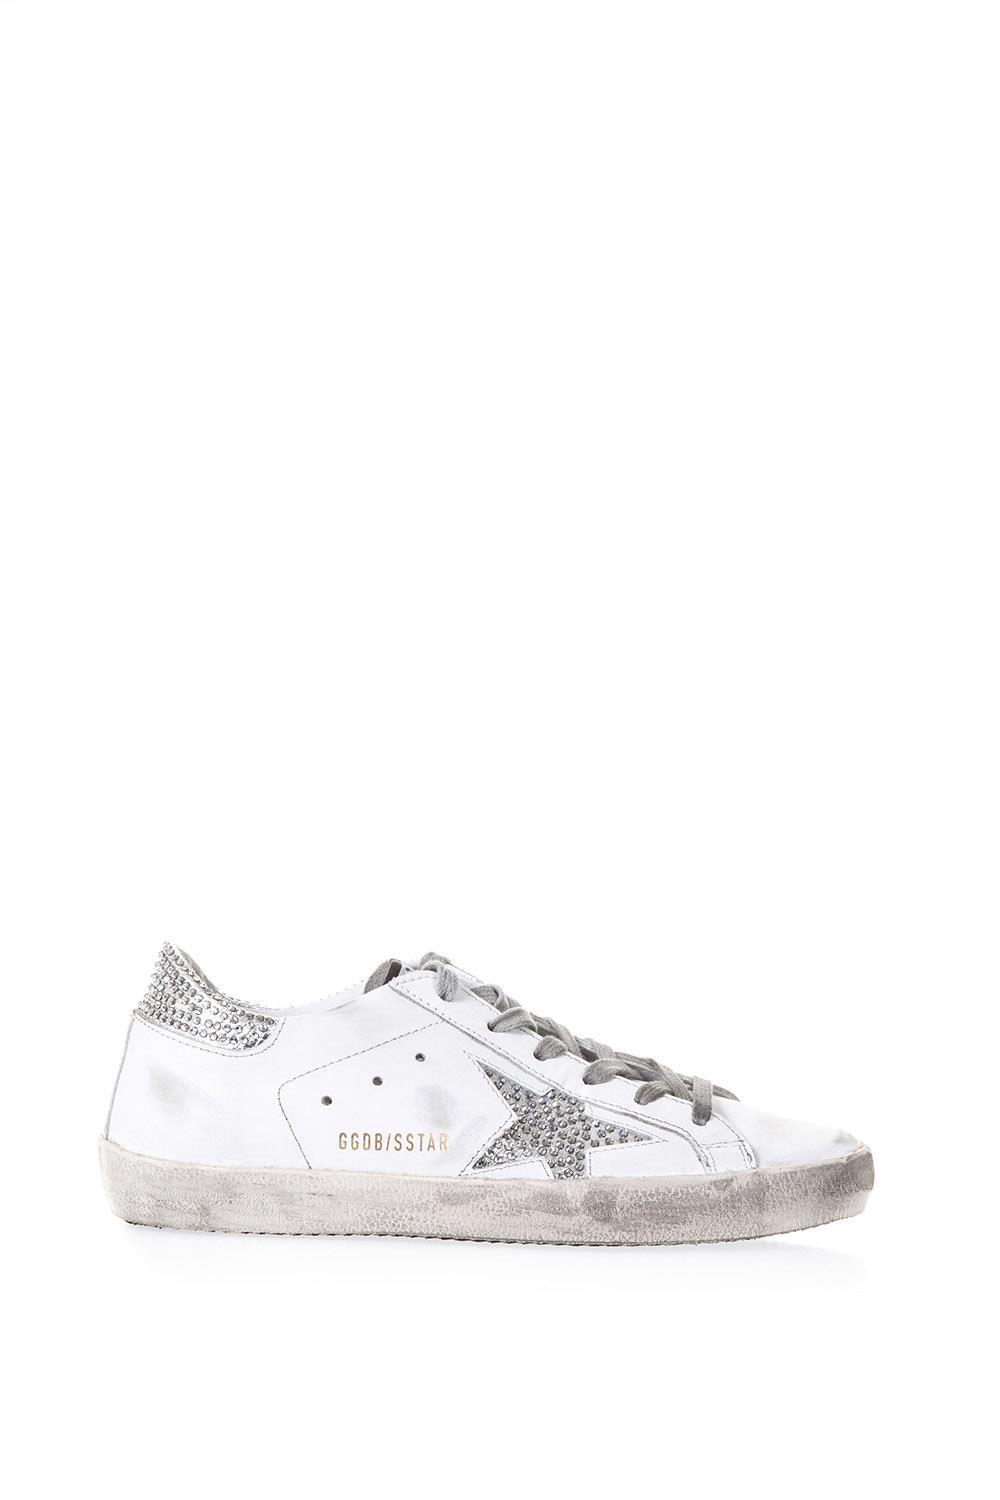 Golden Goose  SNEAKERS SUPER STAR IN PELLE CON CRISTALLI PE 2018 - GOLDEN GOOSE ...